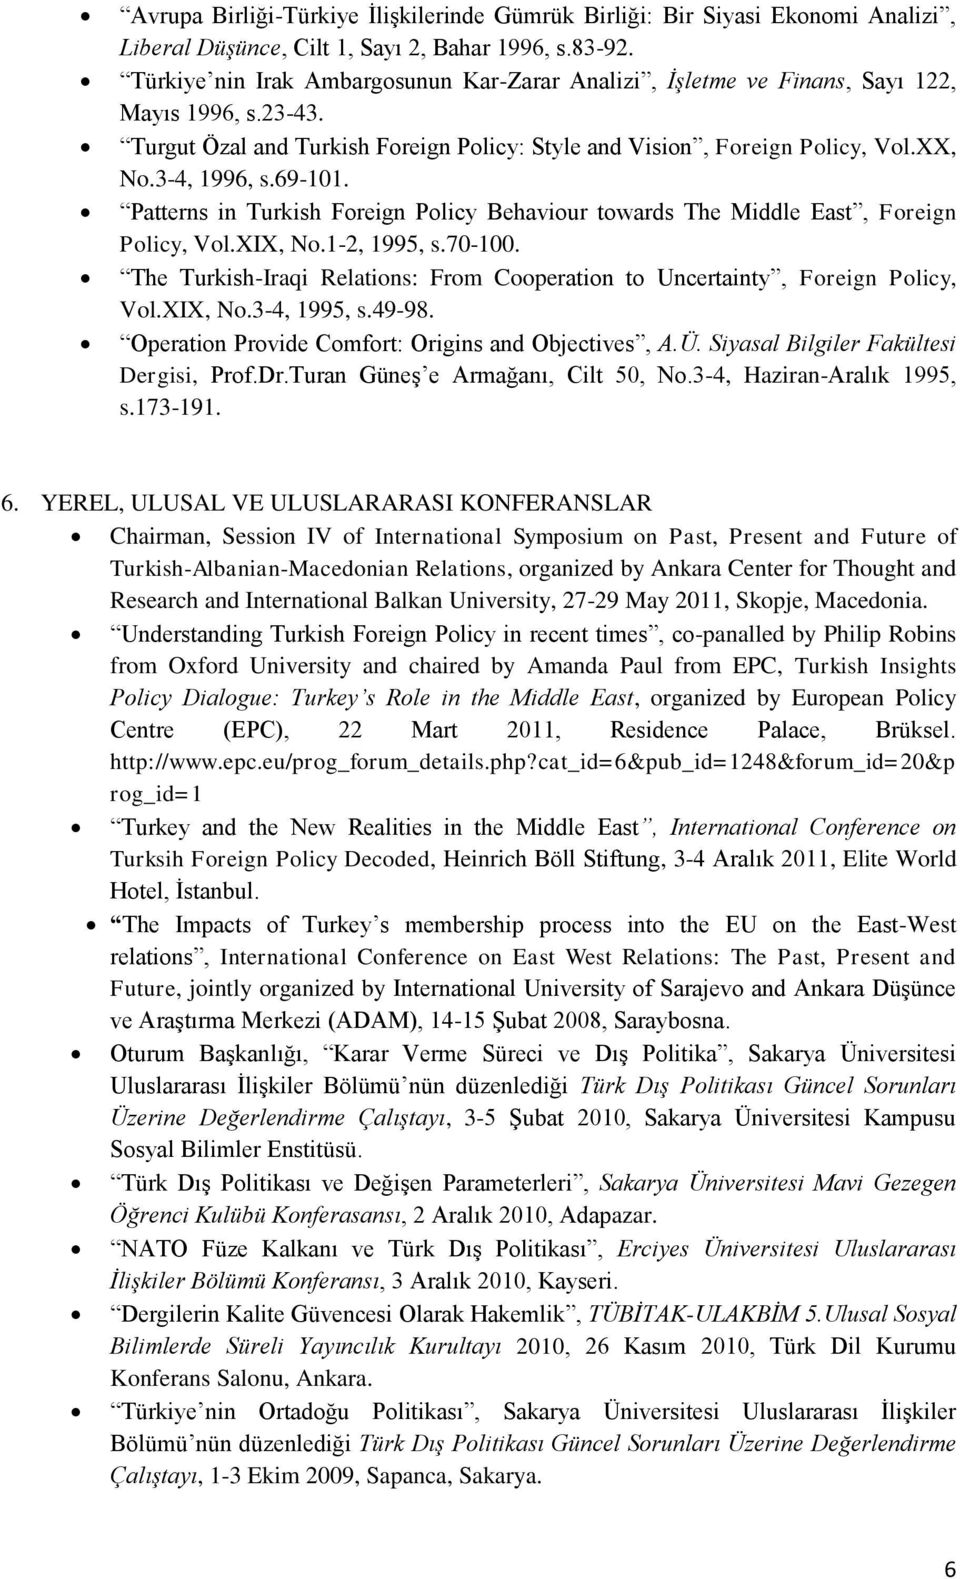 69-101. Patterns in Turkish Foreign Policy Behaviour towards The Middle East, Foreign Policy, Vol.XIX, No.1-2, 1995, s.70-100.